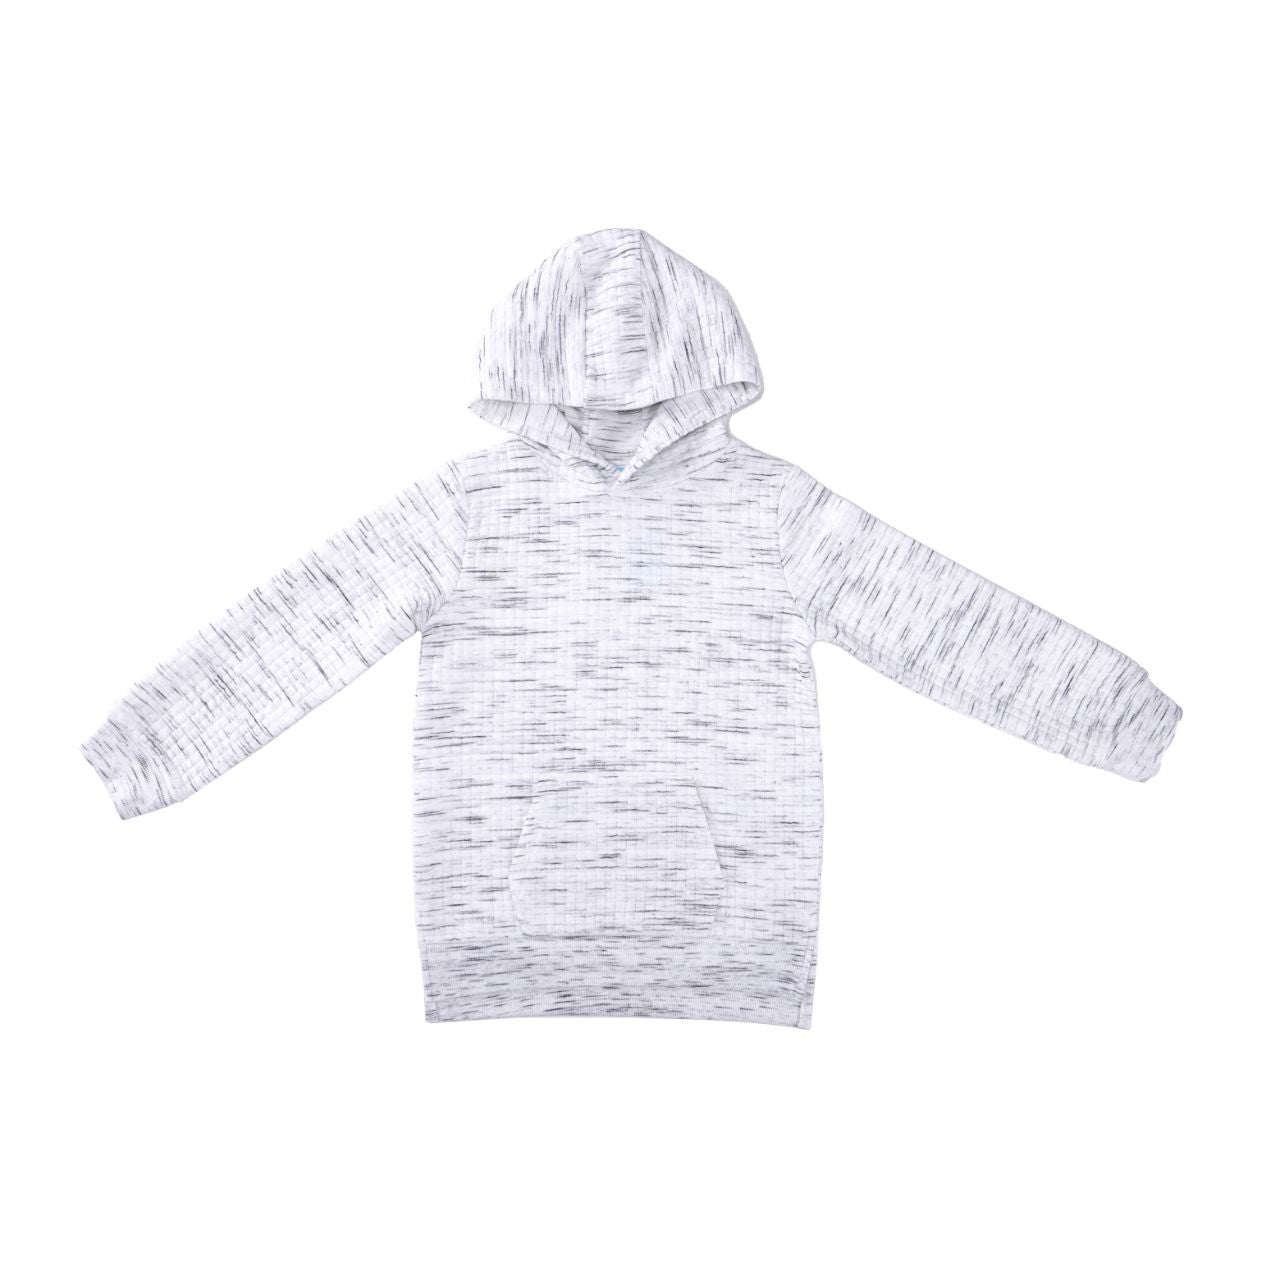 Sean Sweatshirt Toddler